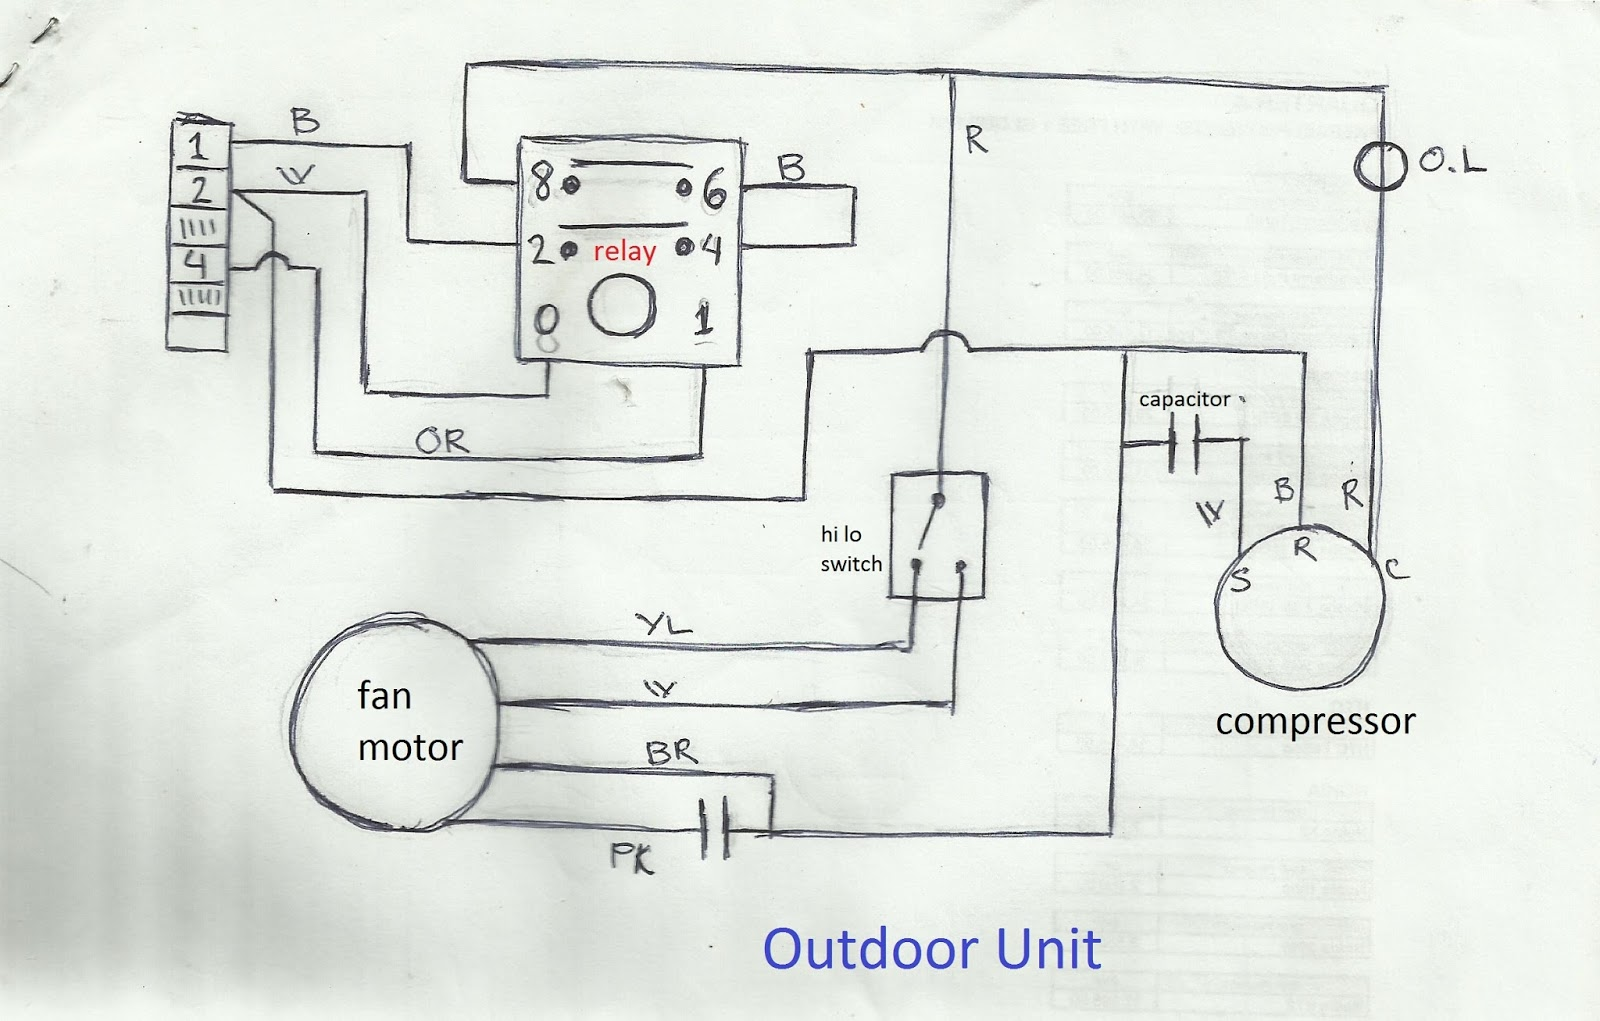 medium resolution of air conditioner fan wiring diagram wiring library split ac wiring diagram simple condenser wiring schematic reveolution